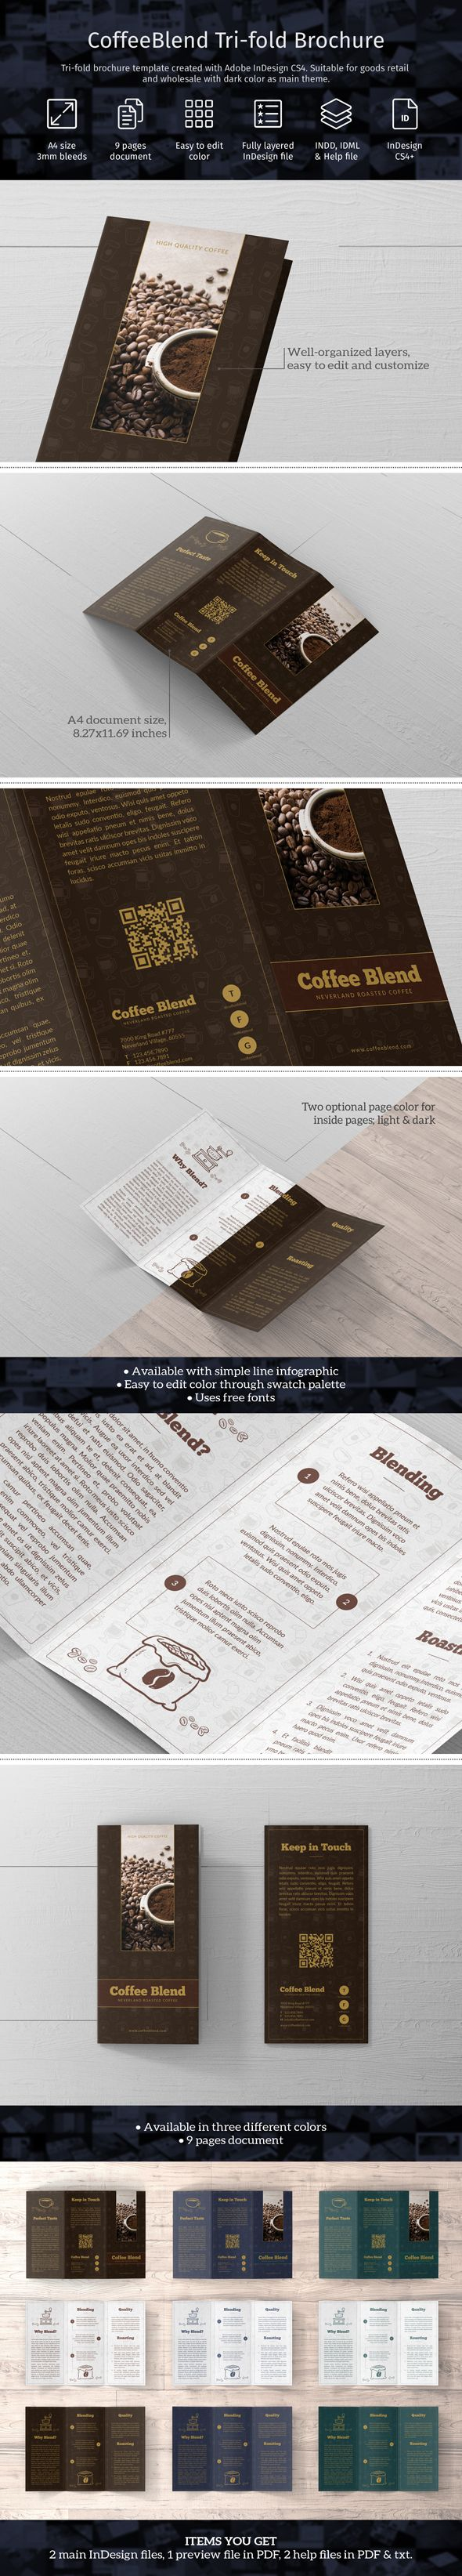 Tri-fold brochure template created with Adobe InDesign CS4. Suitable for goods retail and wholesale with dark color as main theme, coffee for example. Template comes in A4 size with 3mm bleeds and different flap size (97mm + 100mm + 100mm combination) to avoid disturbed folding. #adobe #barista #blue #brochure #brown #coffee #dark #envato #graphicriver #green #indesign #modern #retail #template #trifold